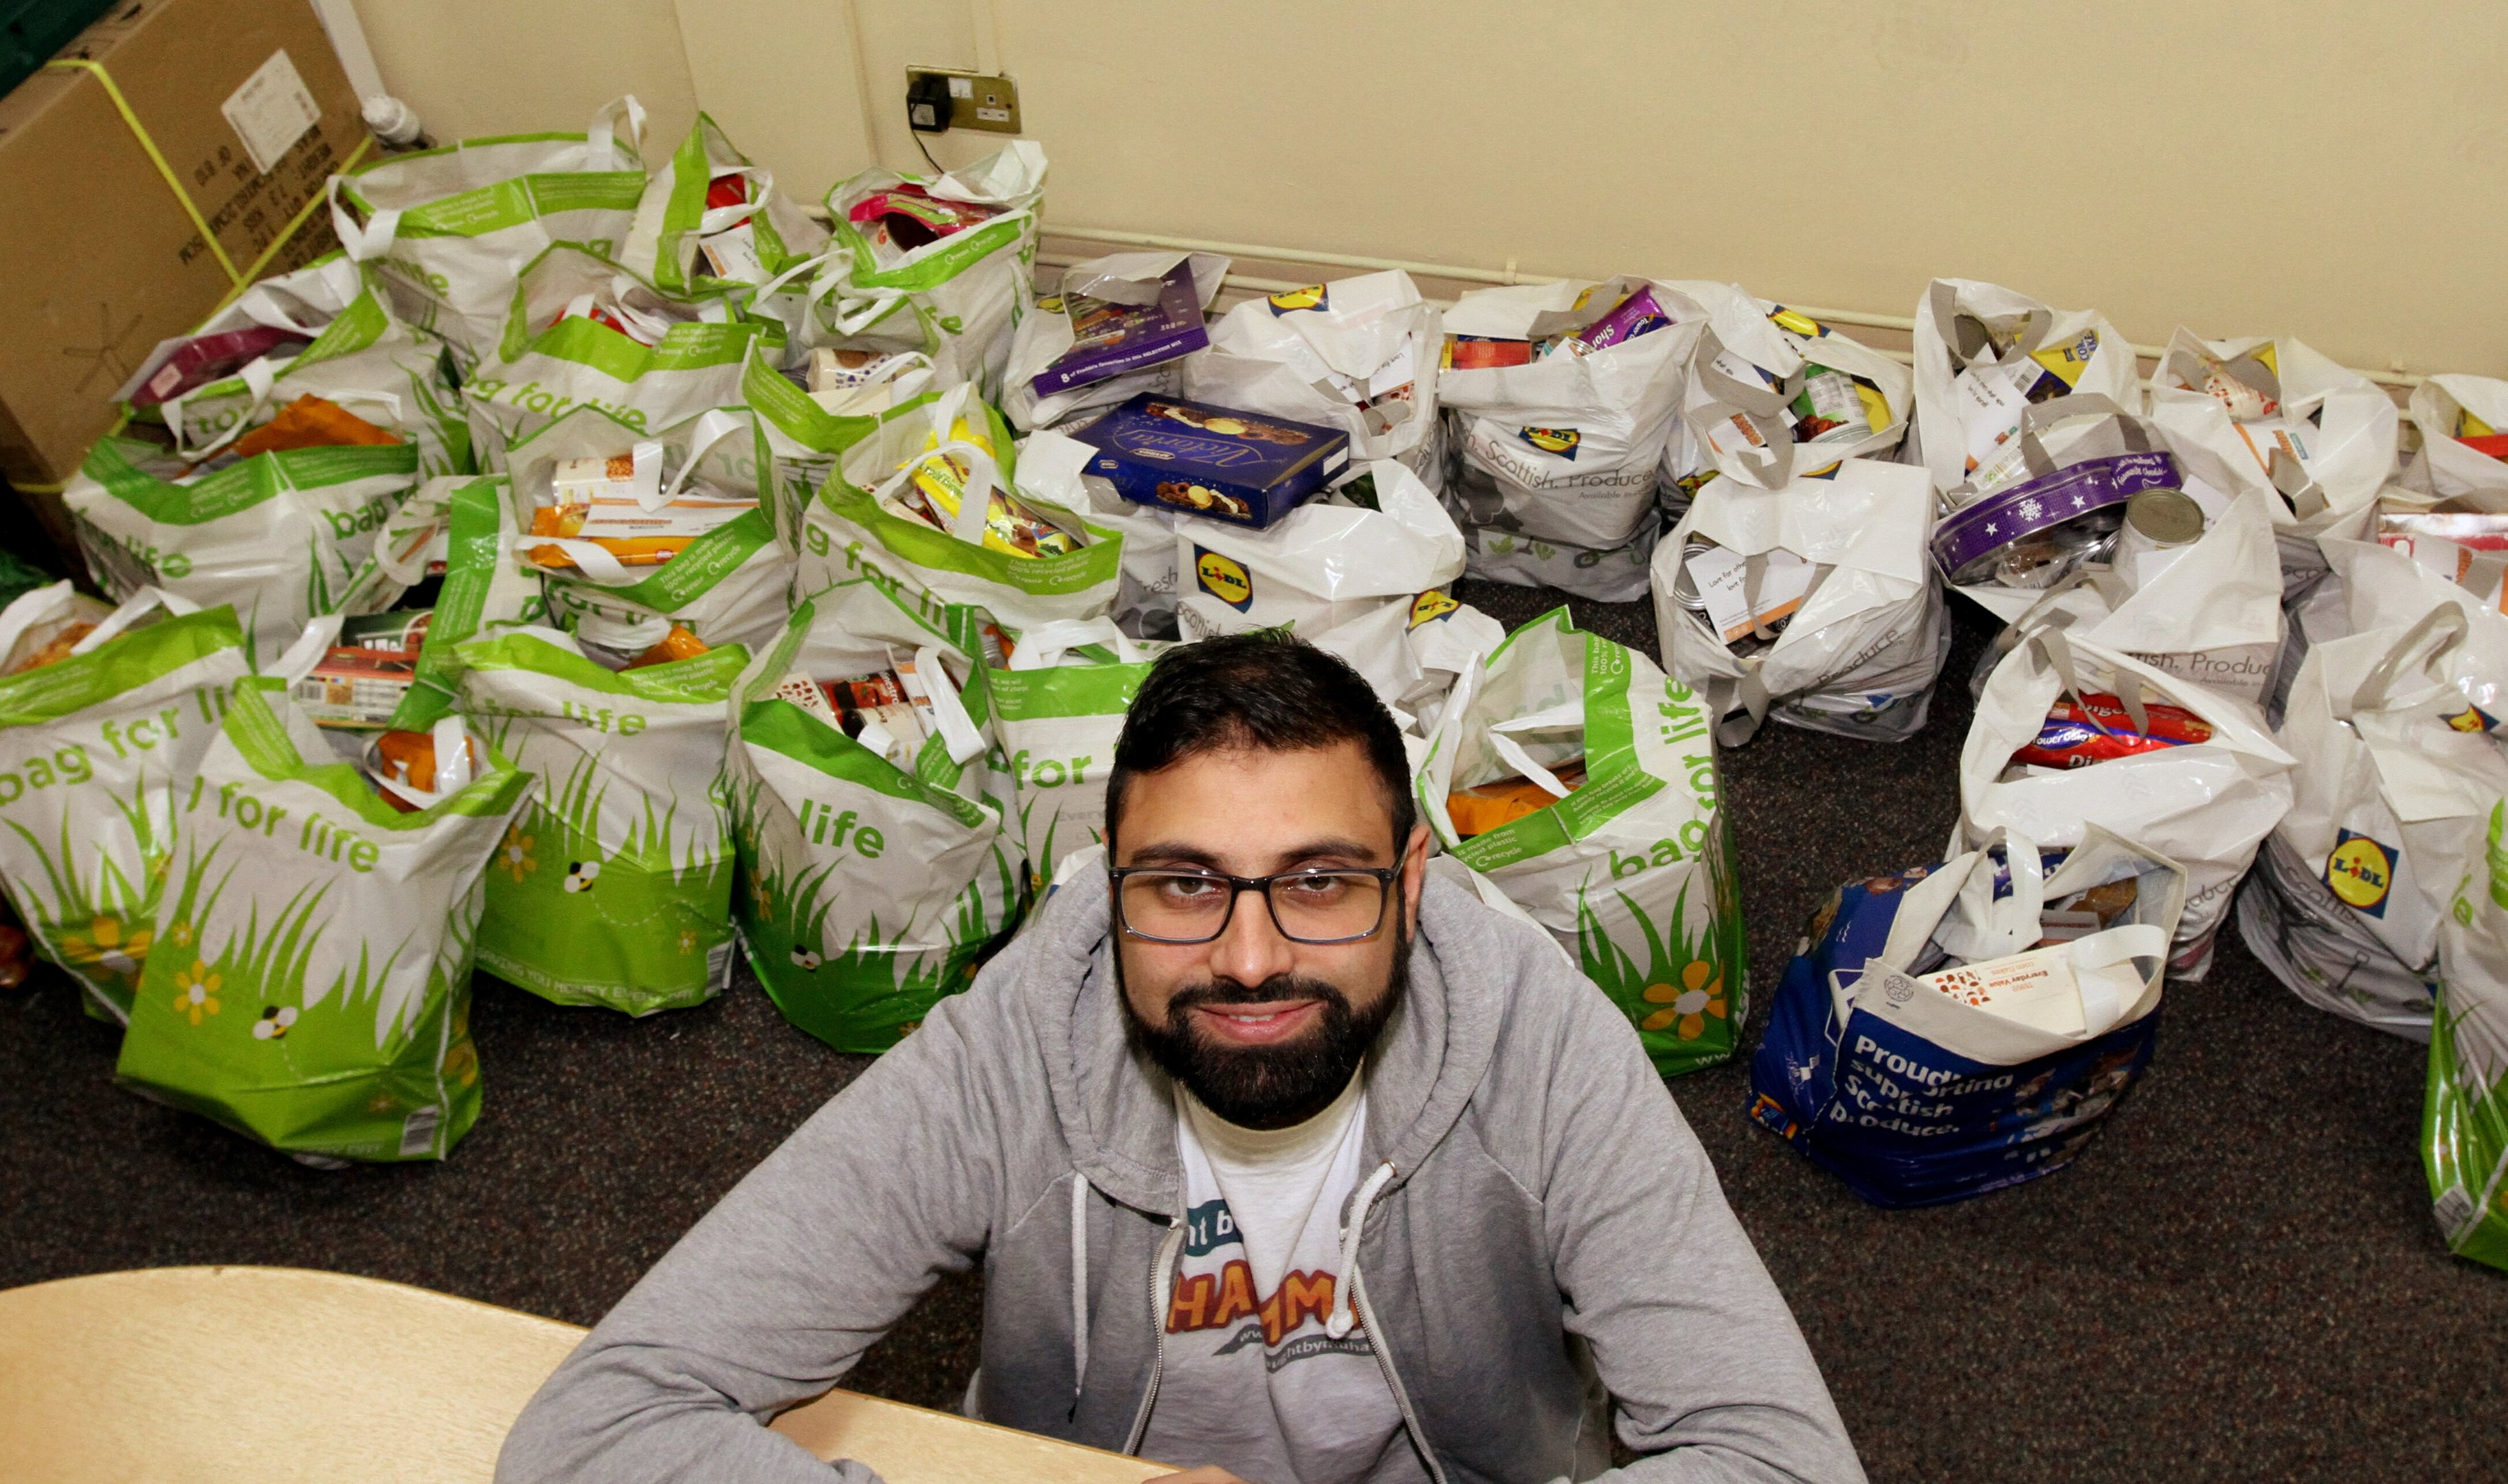 Rizwan has already noticed a difference following Universal Credit.